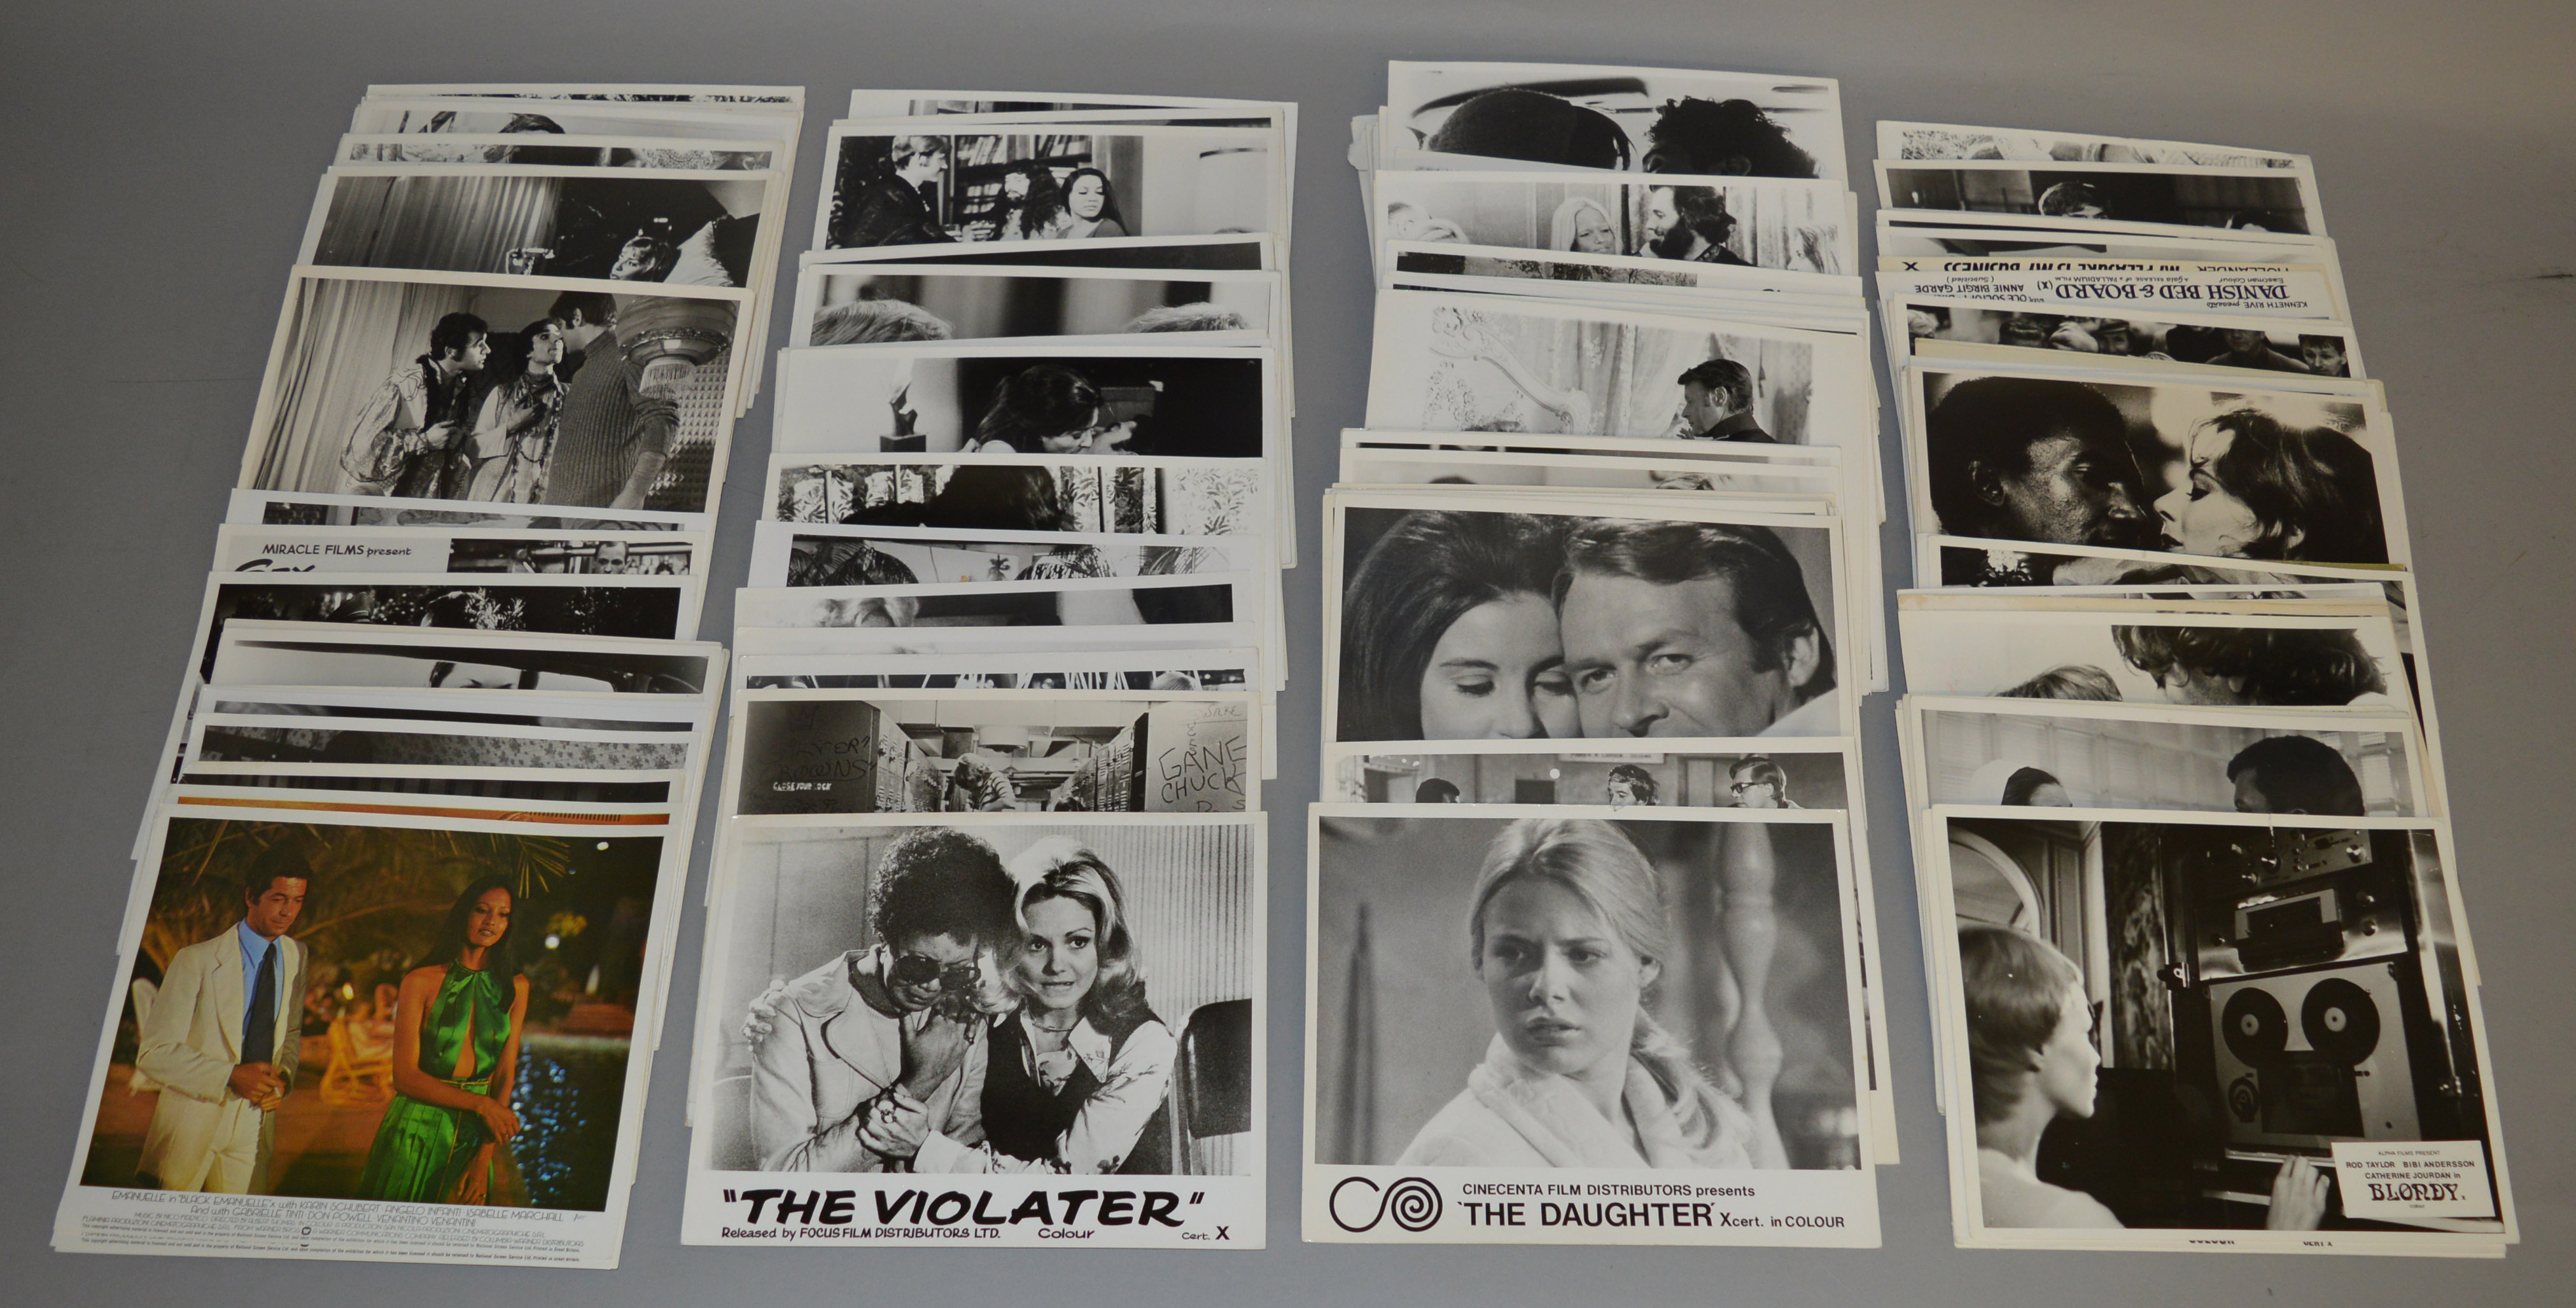 Lot 53 - 200 approx Sexploitation black & white cinema stills mainly from the 1970's titles include Black